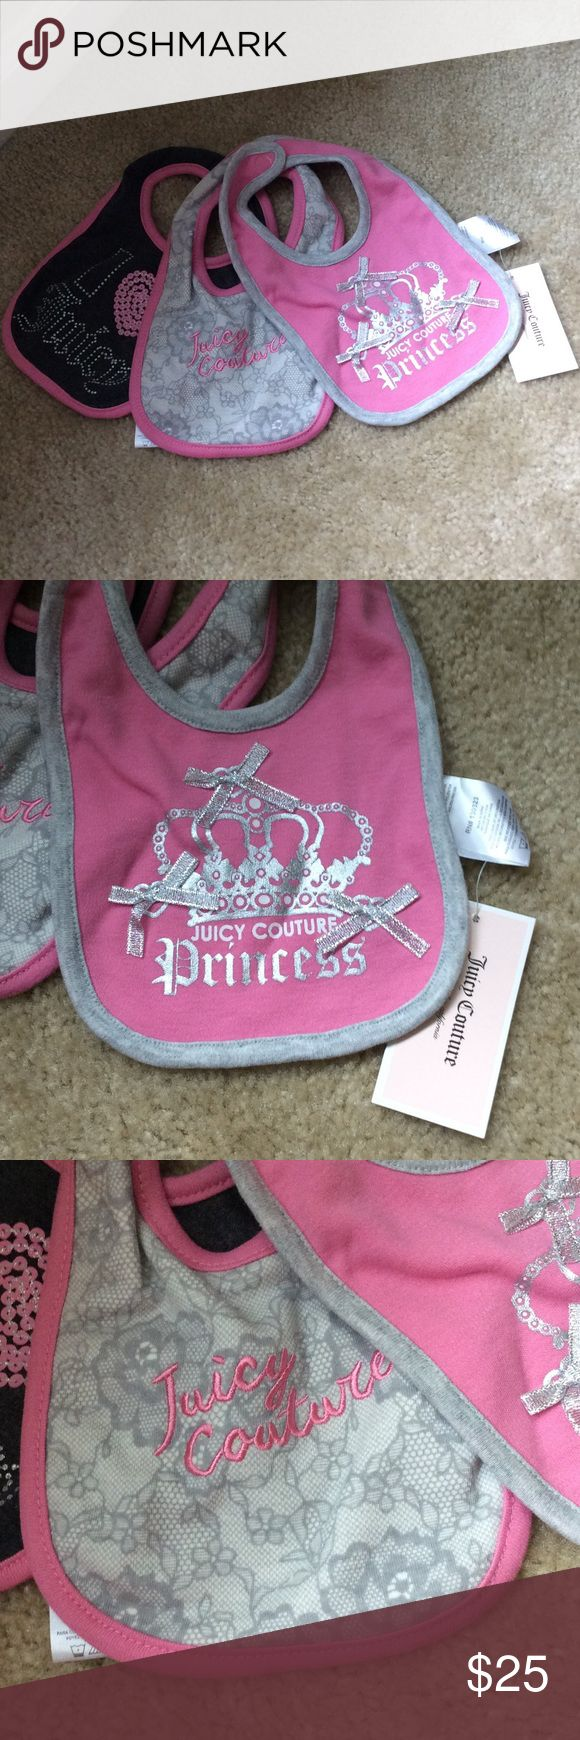 Juicy couture baby bibs Super cute brand new baby bibs! We're a gift to a friend but she already had them! Juicy Couture Accessories Bibs